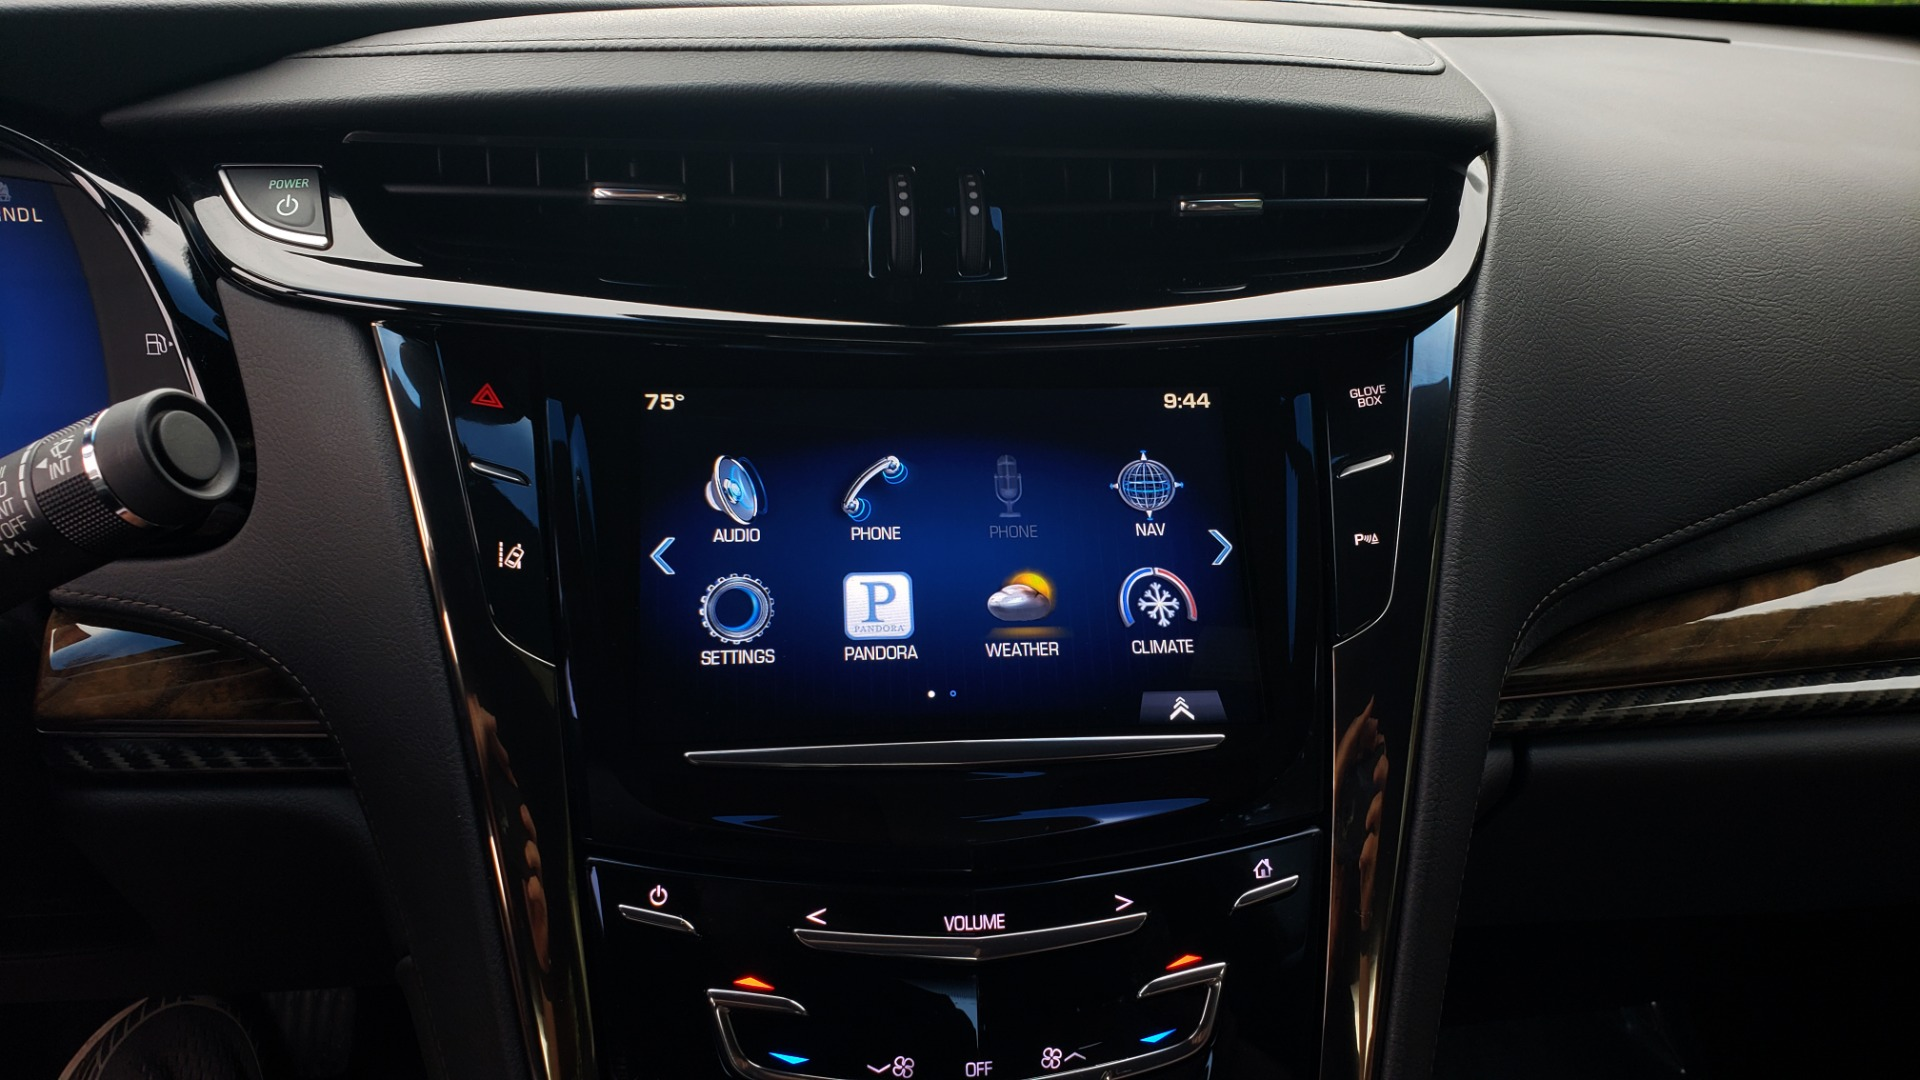 Used 2014 Cadillac ELR 2DR COUPE / HYBRID / NAV / BOSE / HEATED SEATS / REARVIEW for sale $34,000 at Formula Imports in Charlotte NC 28227 39